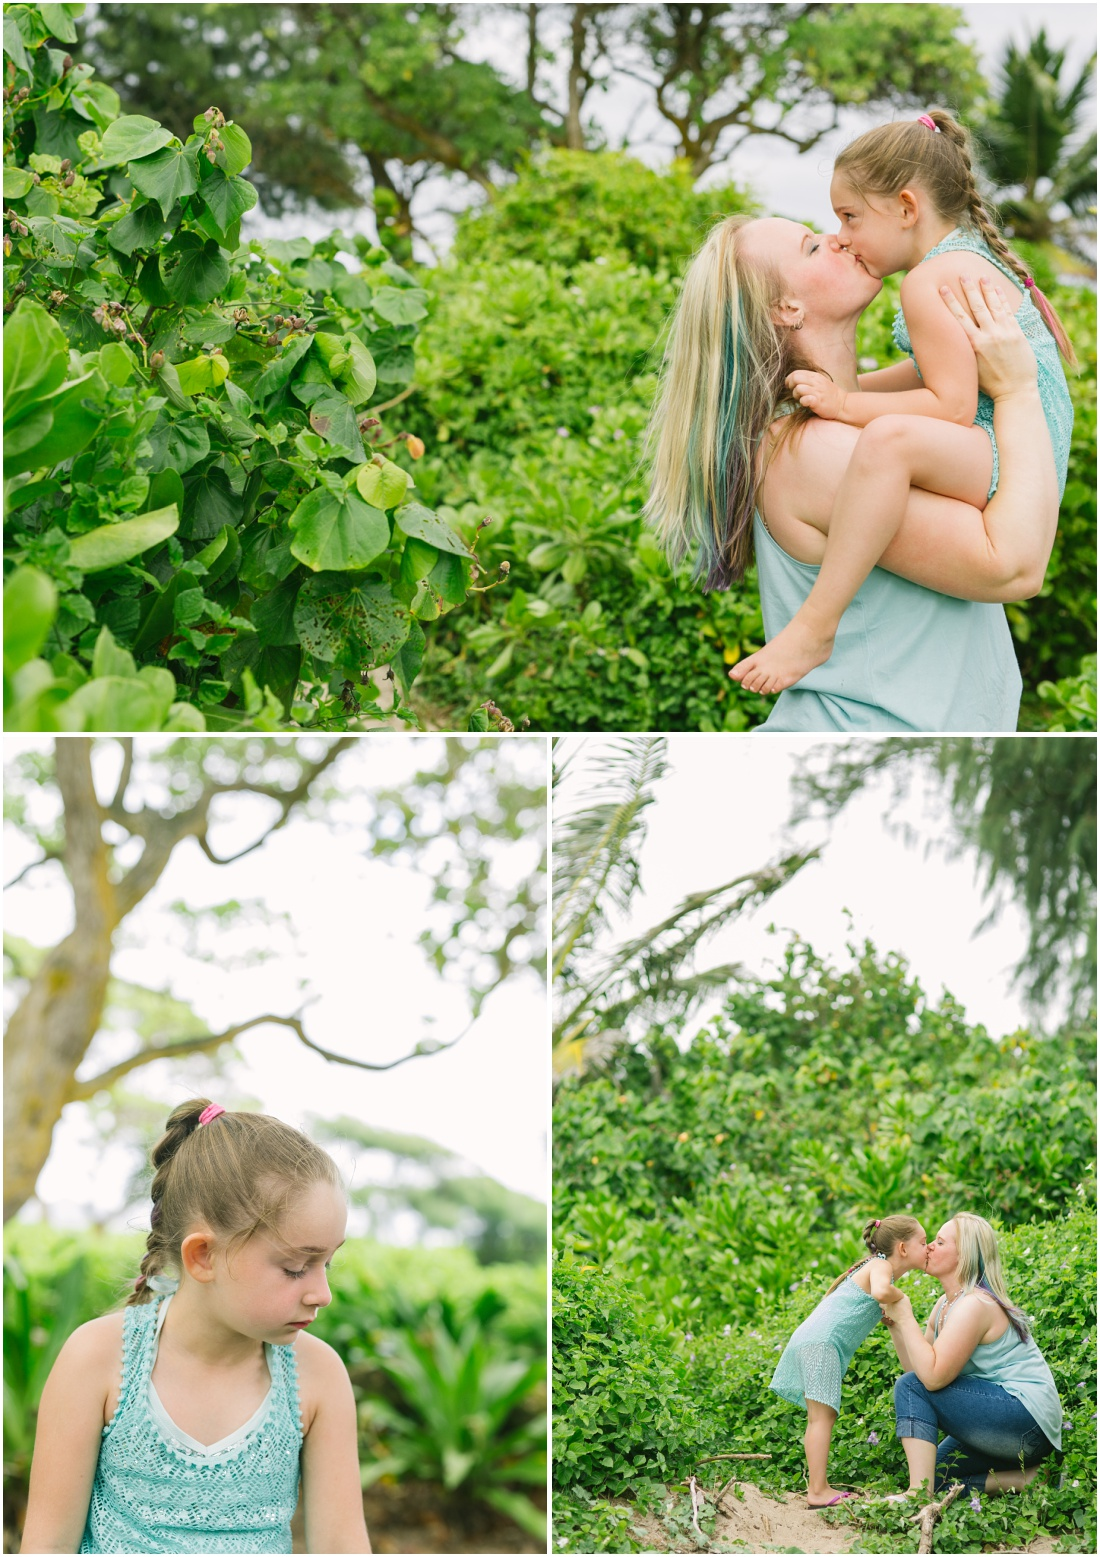 Hawaii Mom Blog Visit Tokyo Totti Candy Factory: Mother Daughter Beach Session In Hawaii » Fun Oahu Family